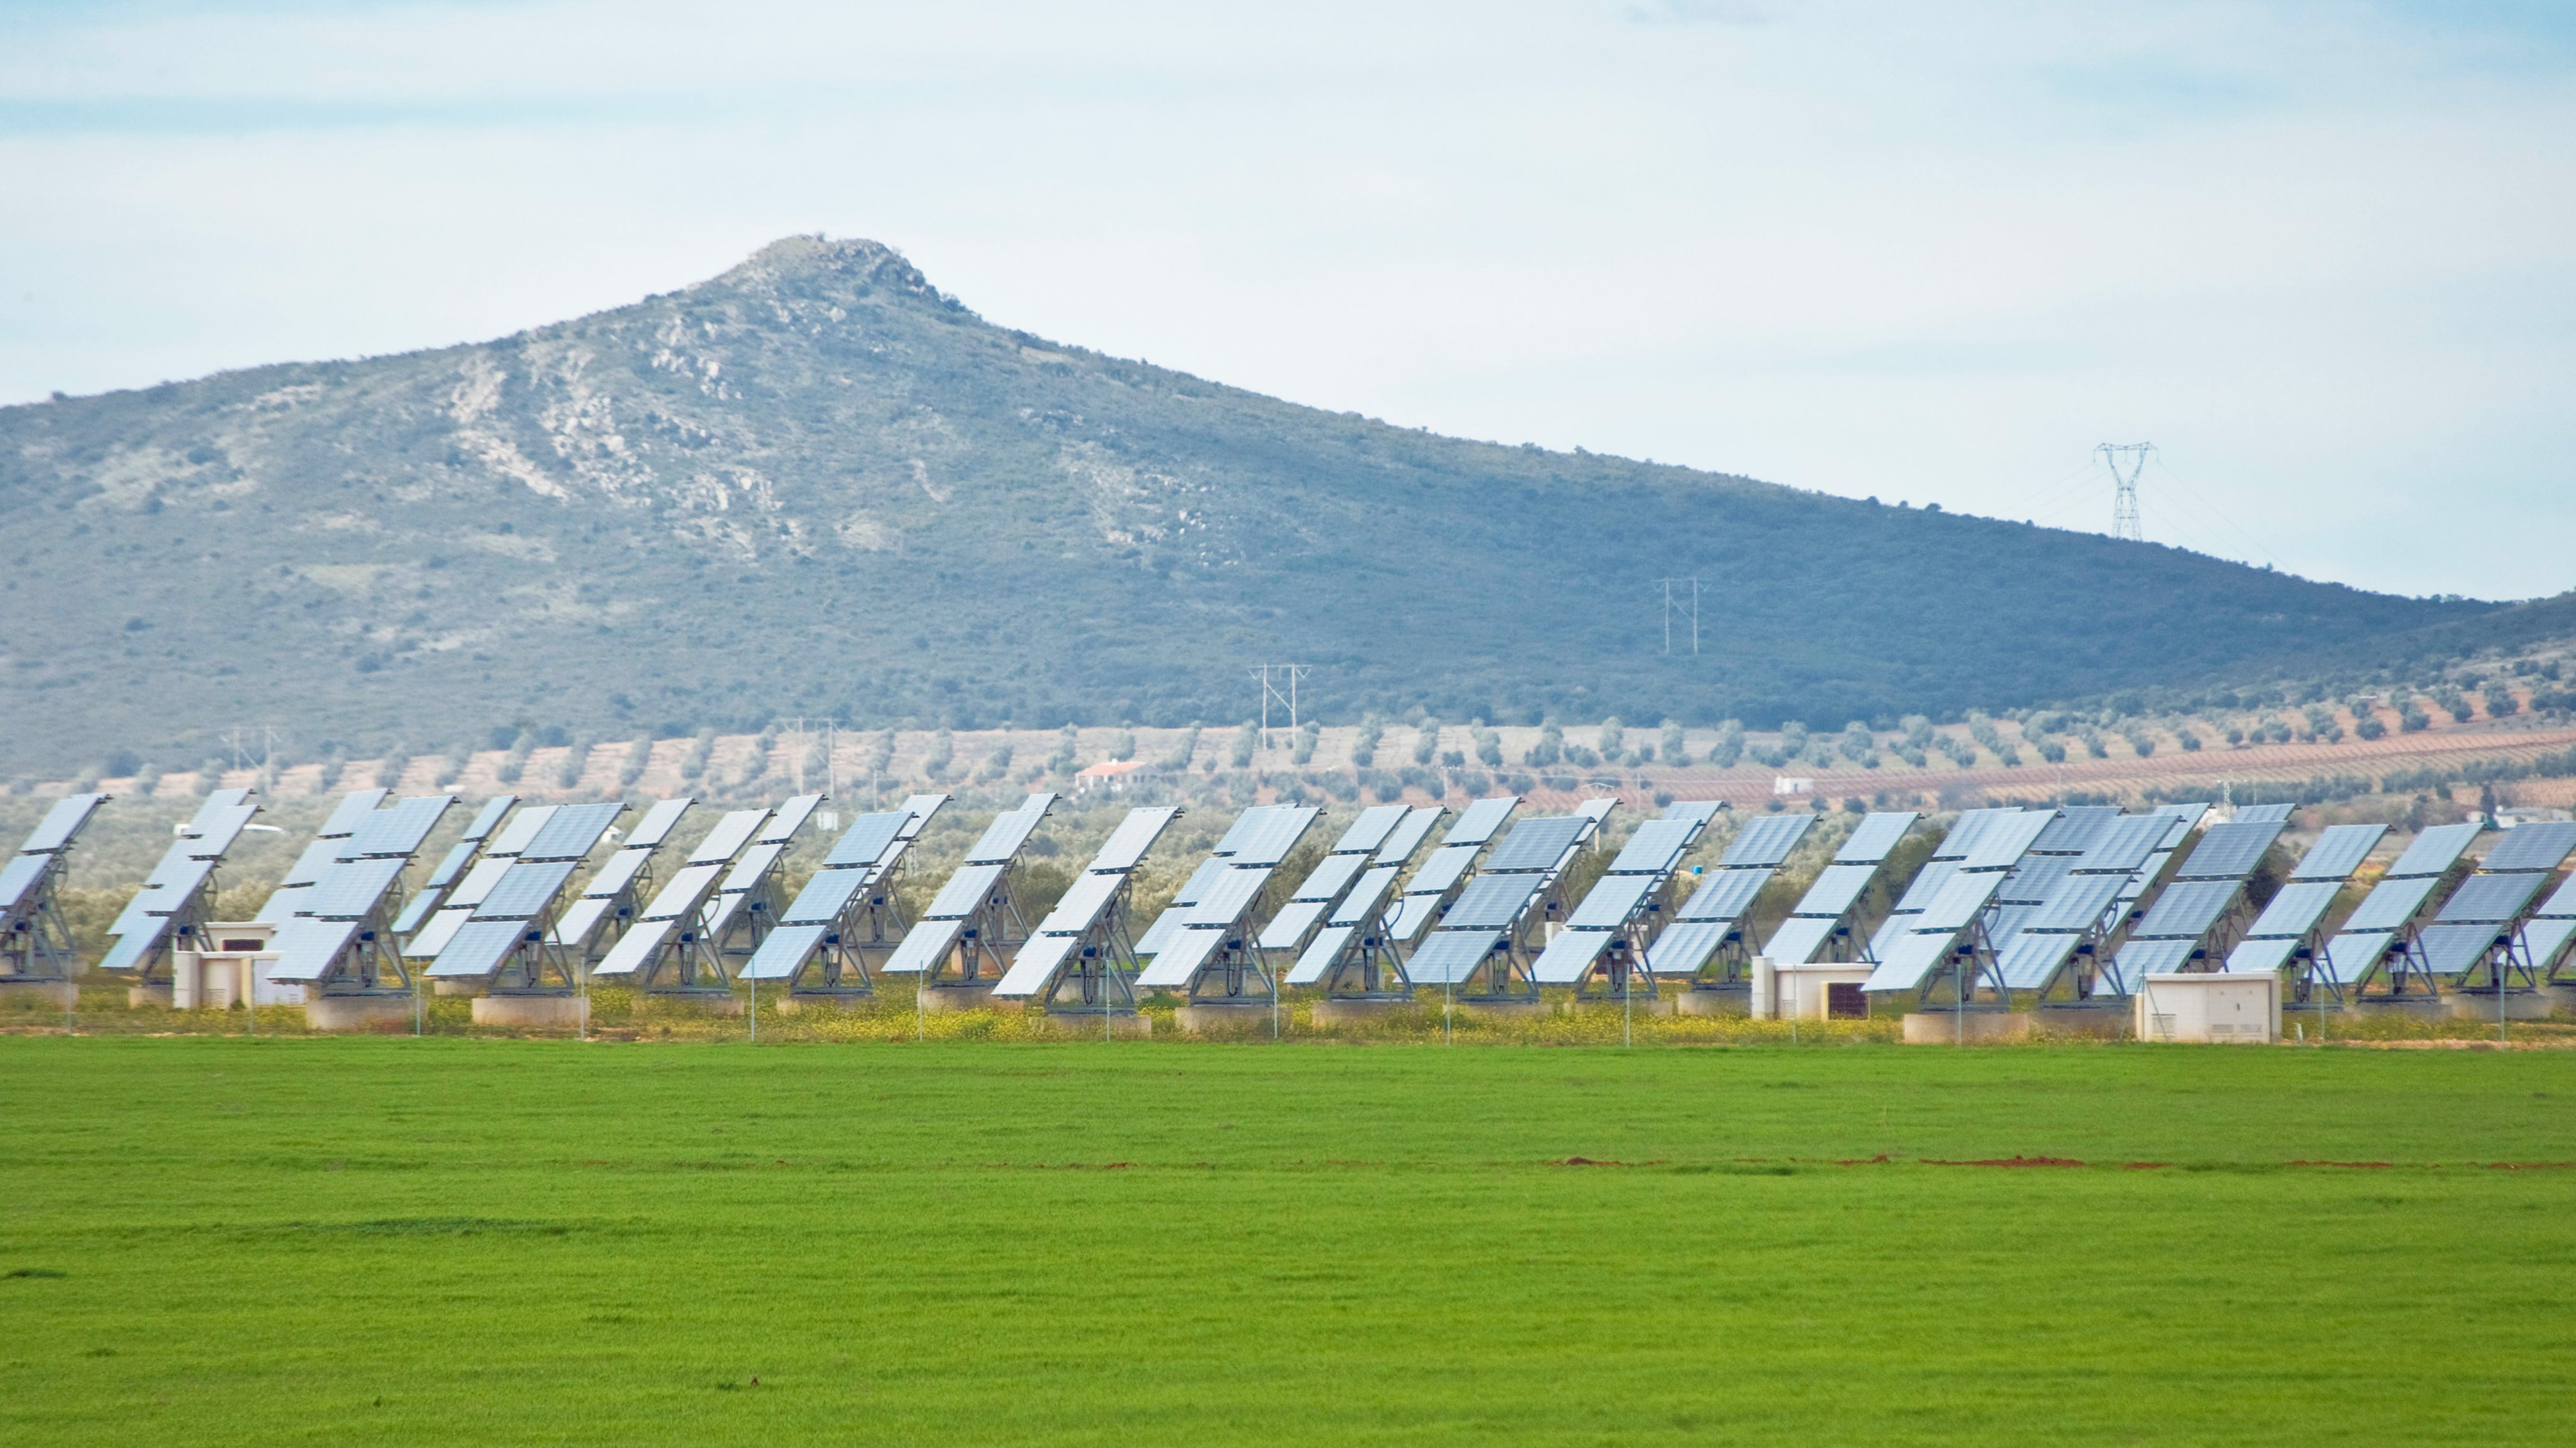 Array of Solar Panels in Southern Spain, between Madrid and Granada